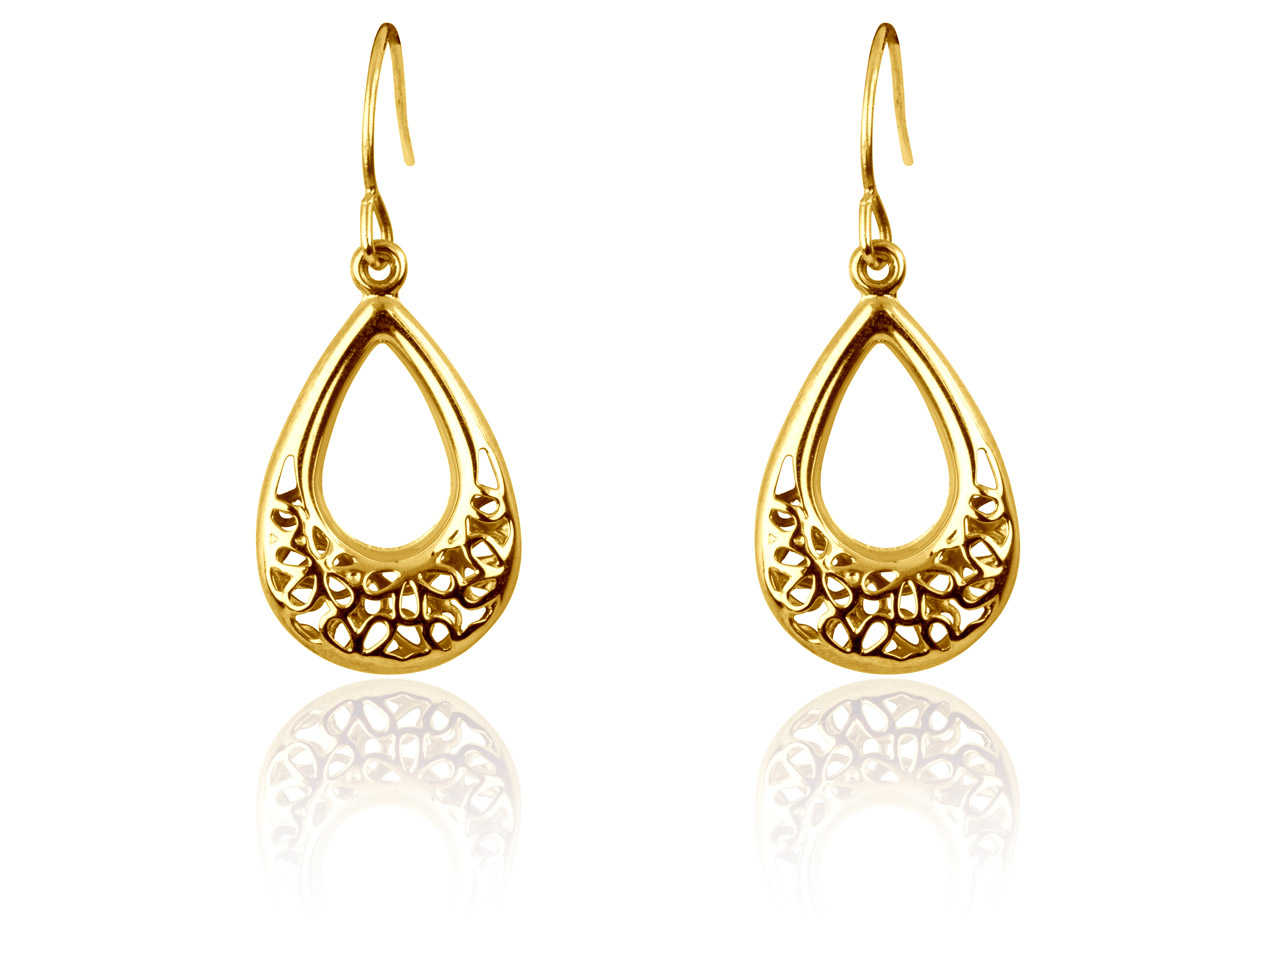 9ct Yellow Filigree Style Double   Sided Dropper Earrings